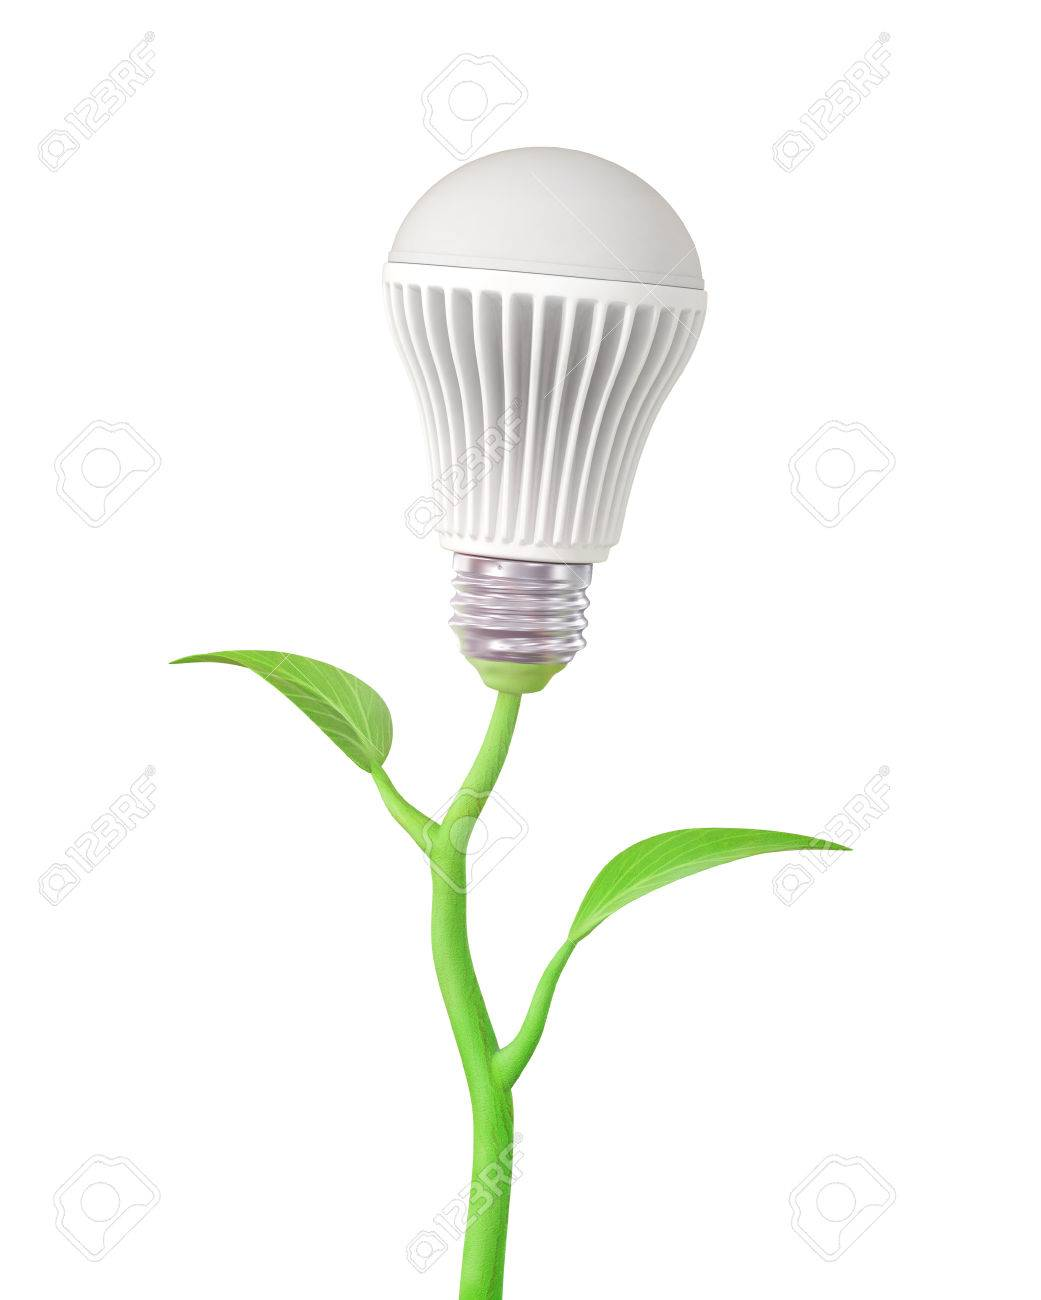 Concept of green energy. The LED light bulb on stem of plant on a white  sc 1 st  123RF Stock Photos & Concept Of Green Energy. The LED Light Bulb On Stem Of Plant ... azcodes.com